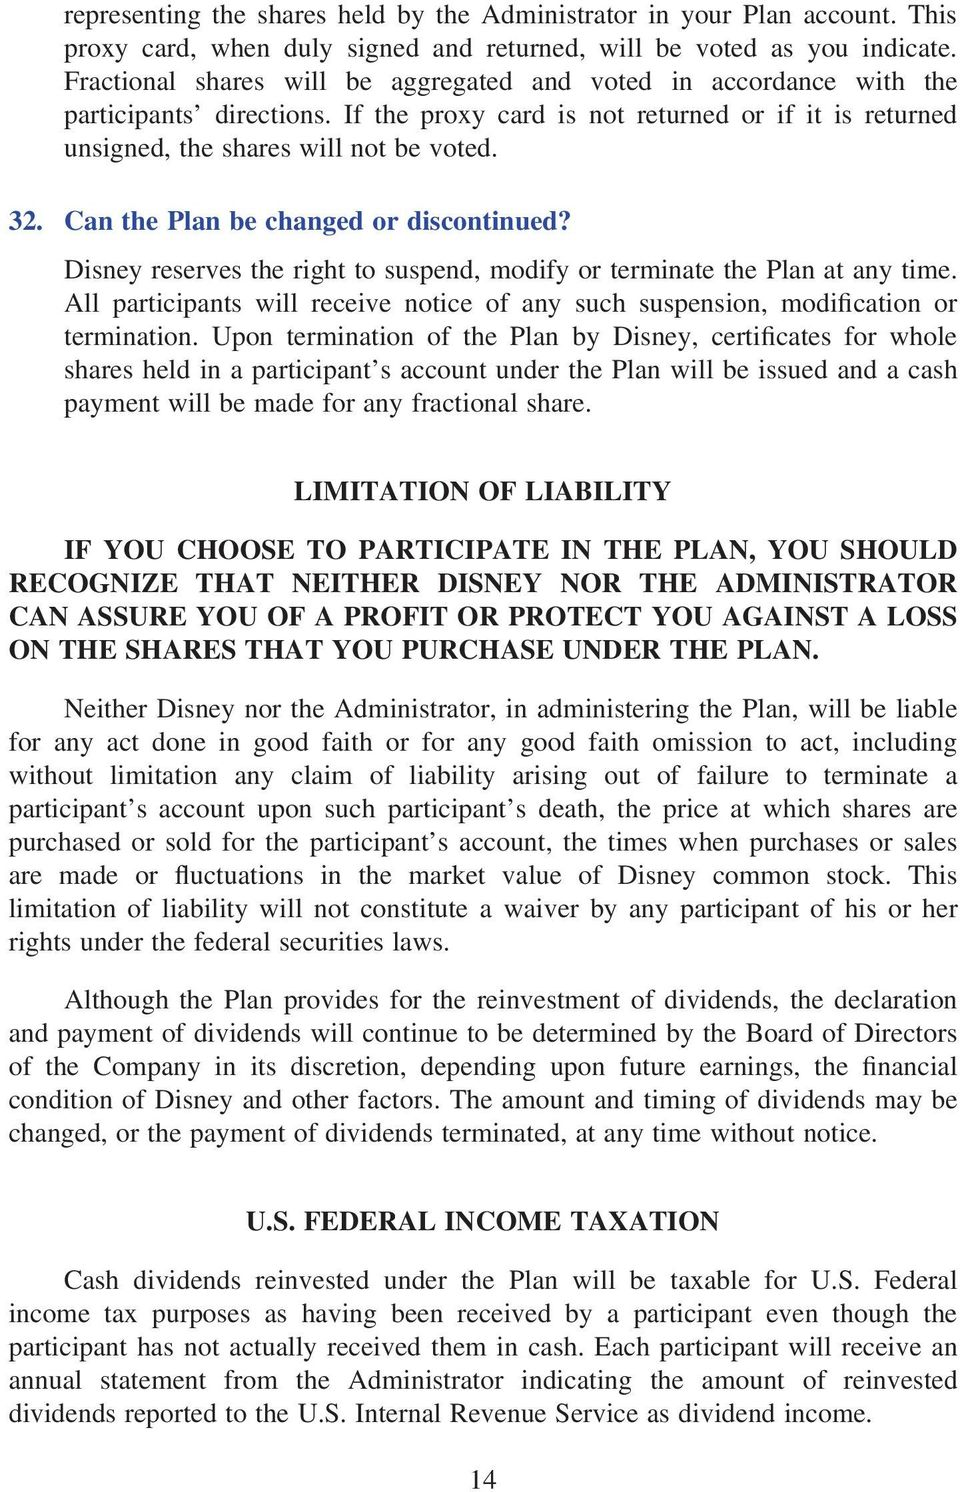 Can the Plan be changed or discontinued? Disney reserves the right to suspend, modify or terminate the Plan at any time.